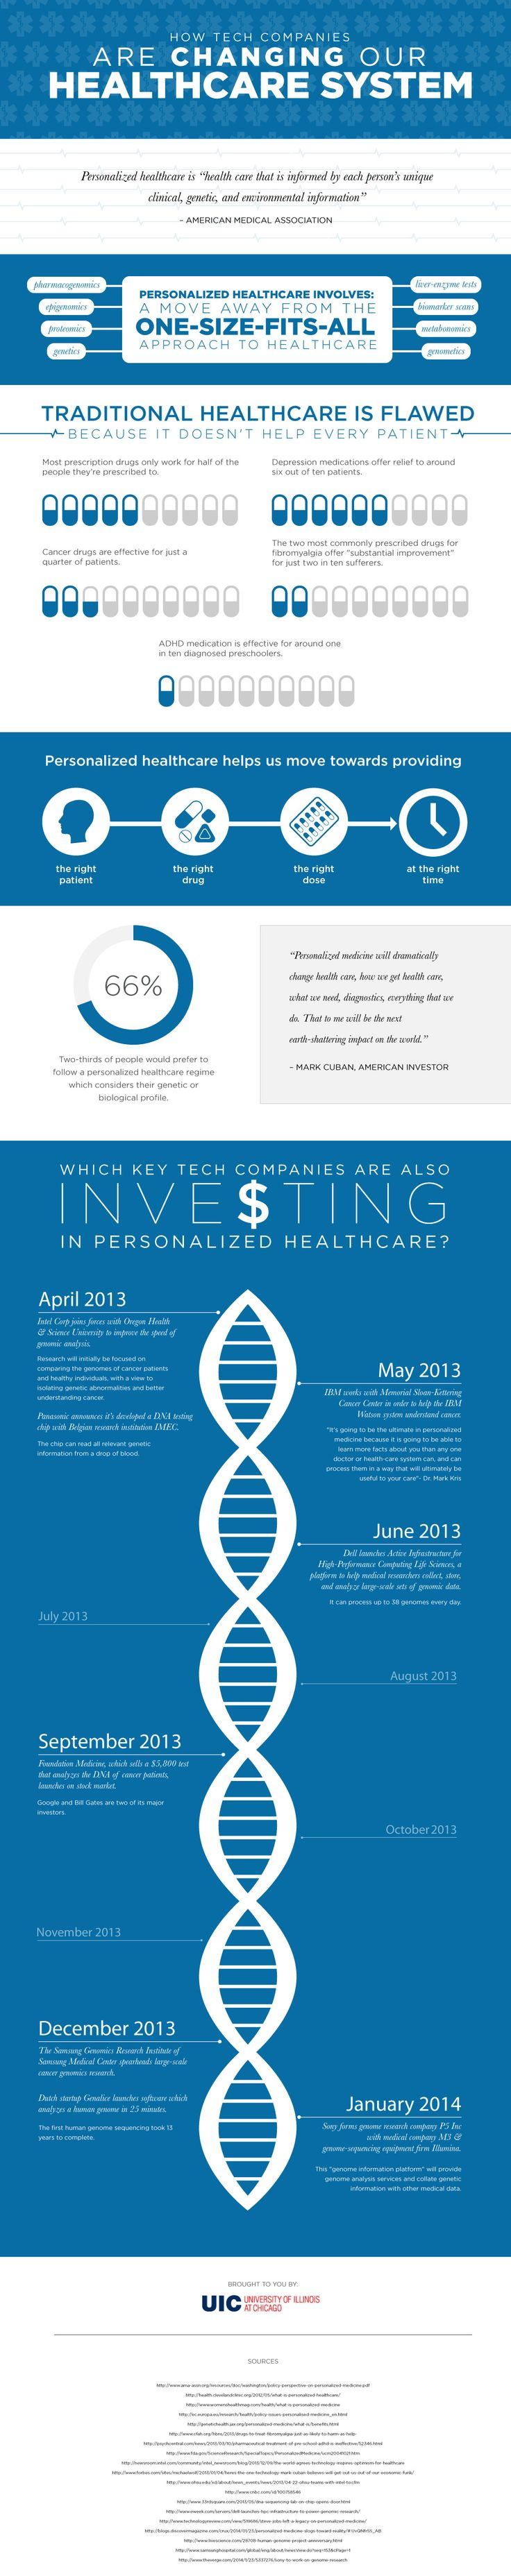 How tech comnpanies are changing our Healthcare system #infografia #infographic #health